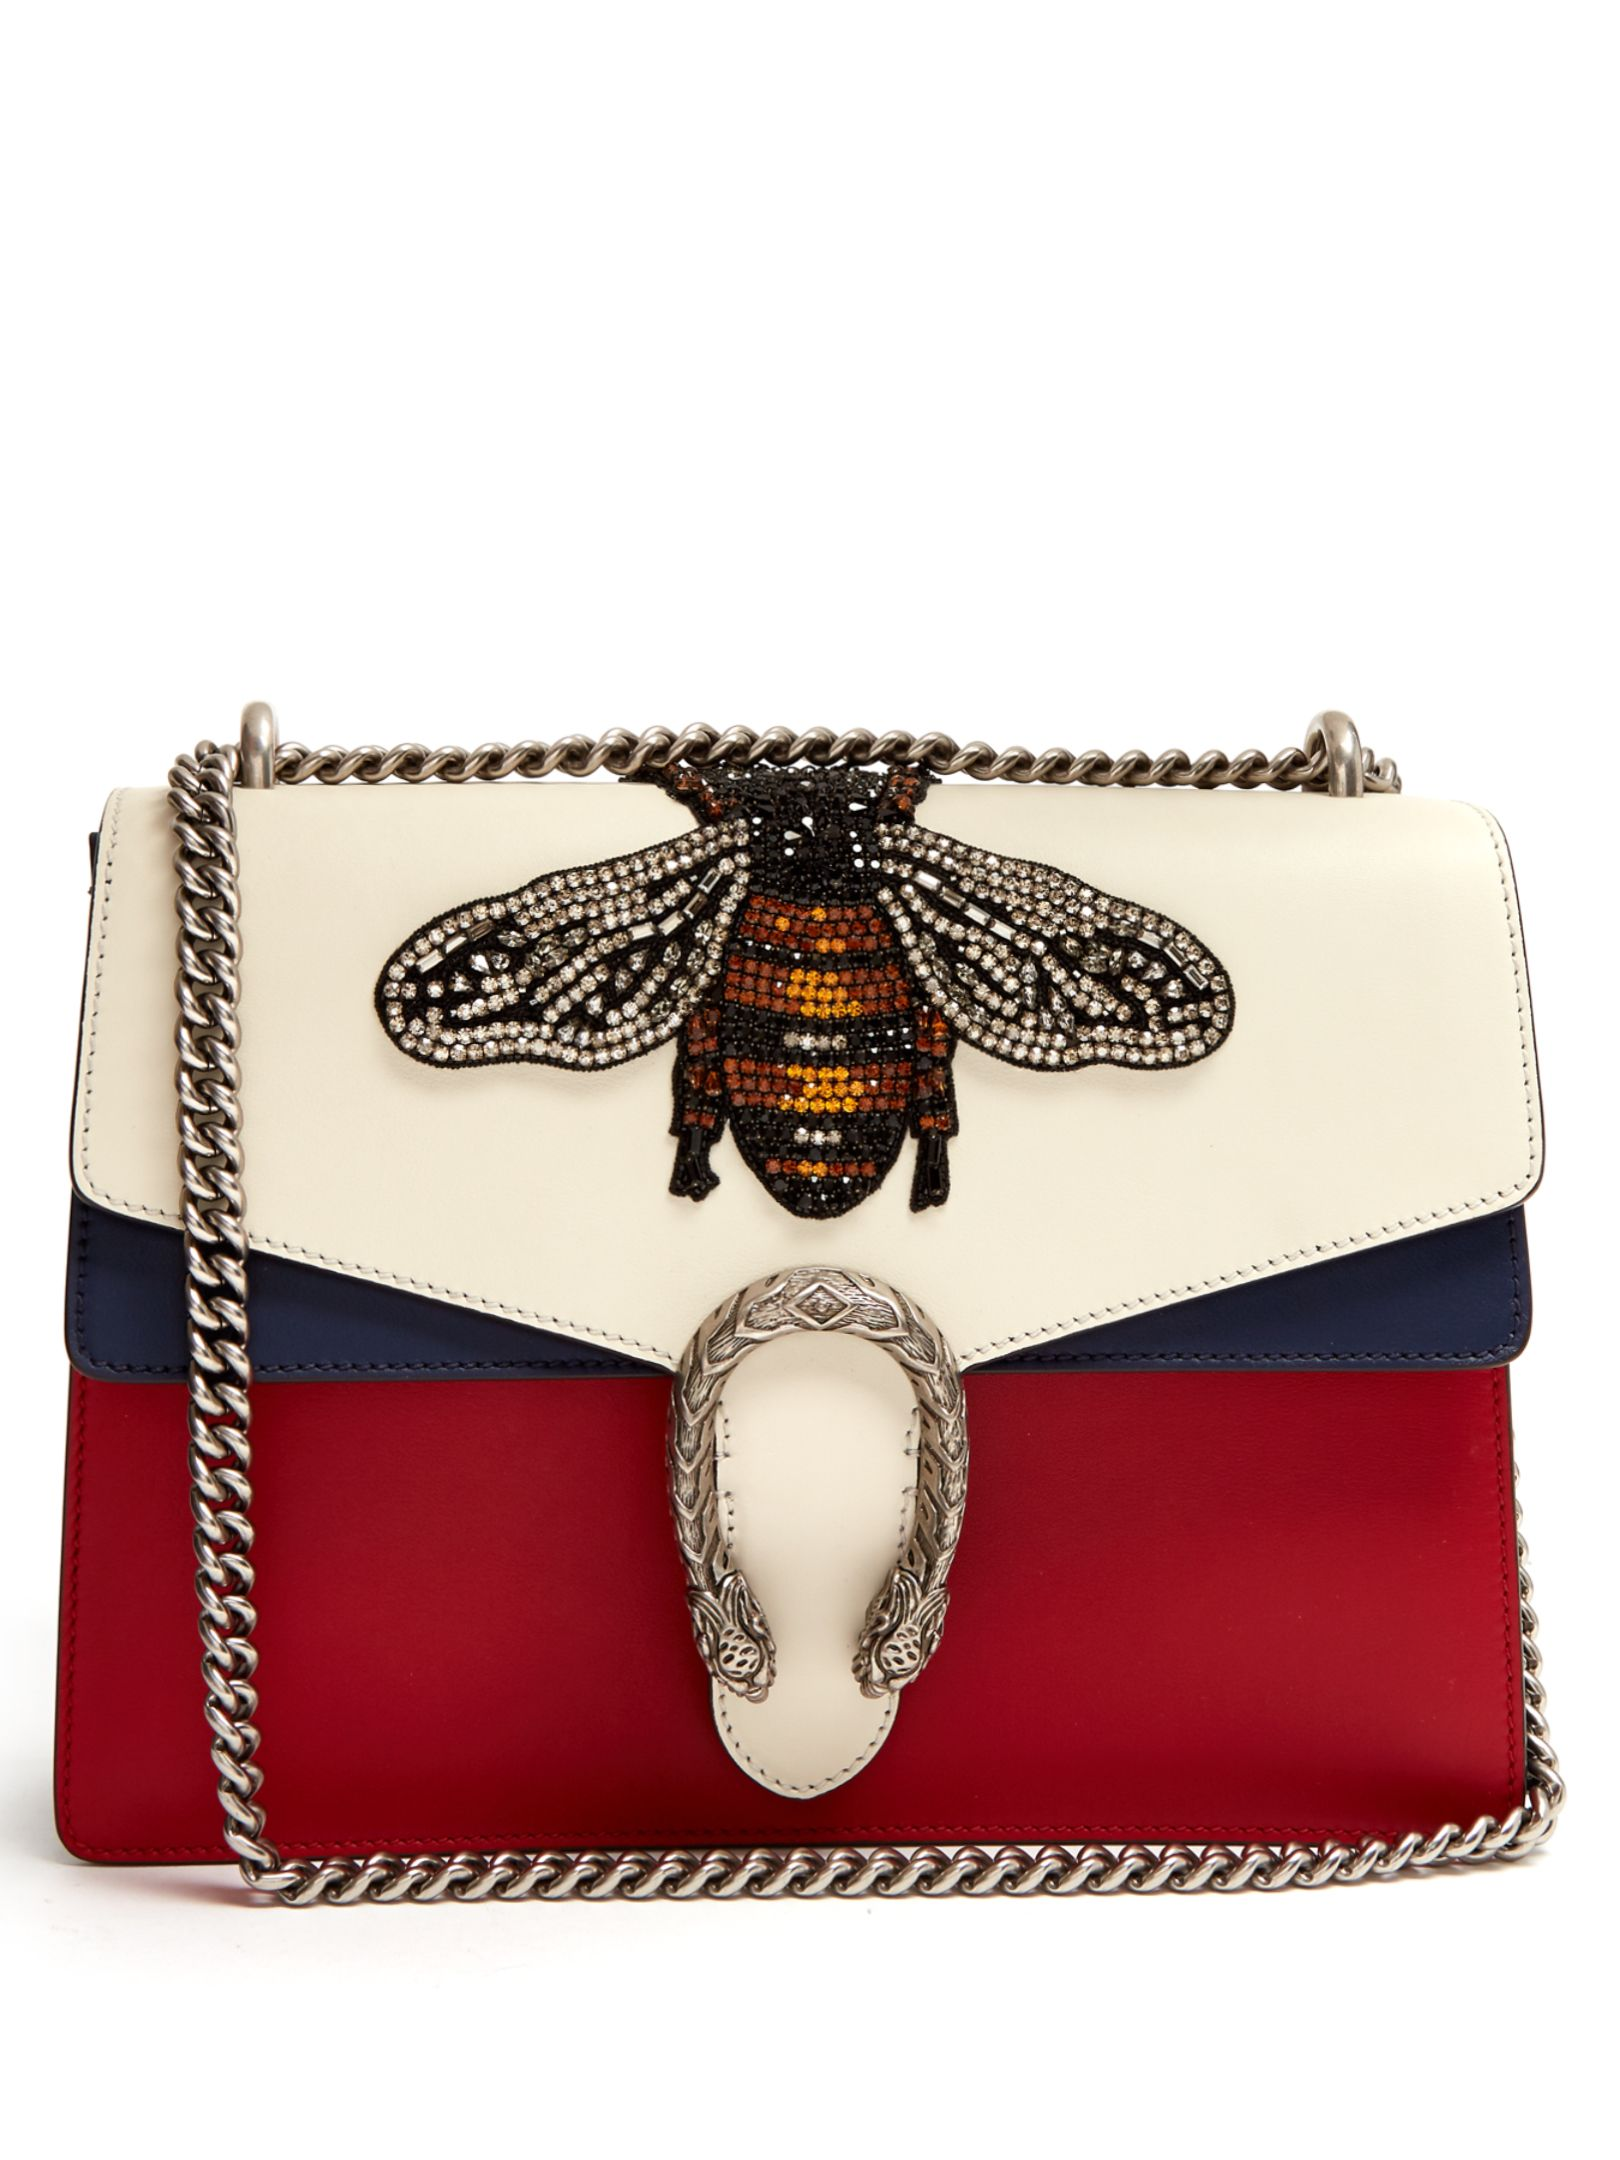 964d4b64c2b GUCCI Dionysus large bee appliqué shoulder bag